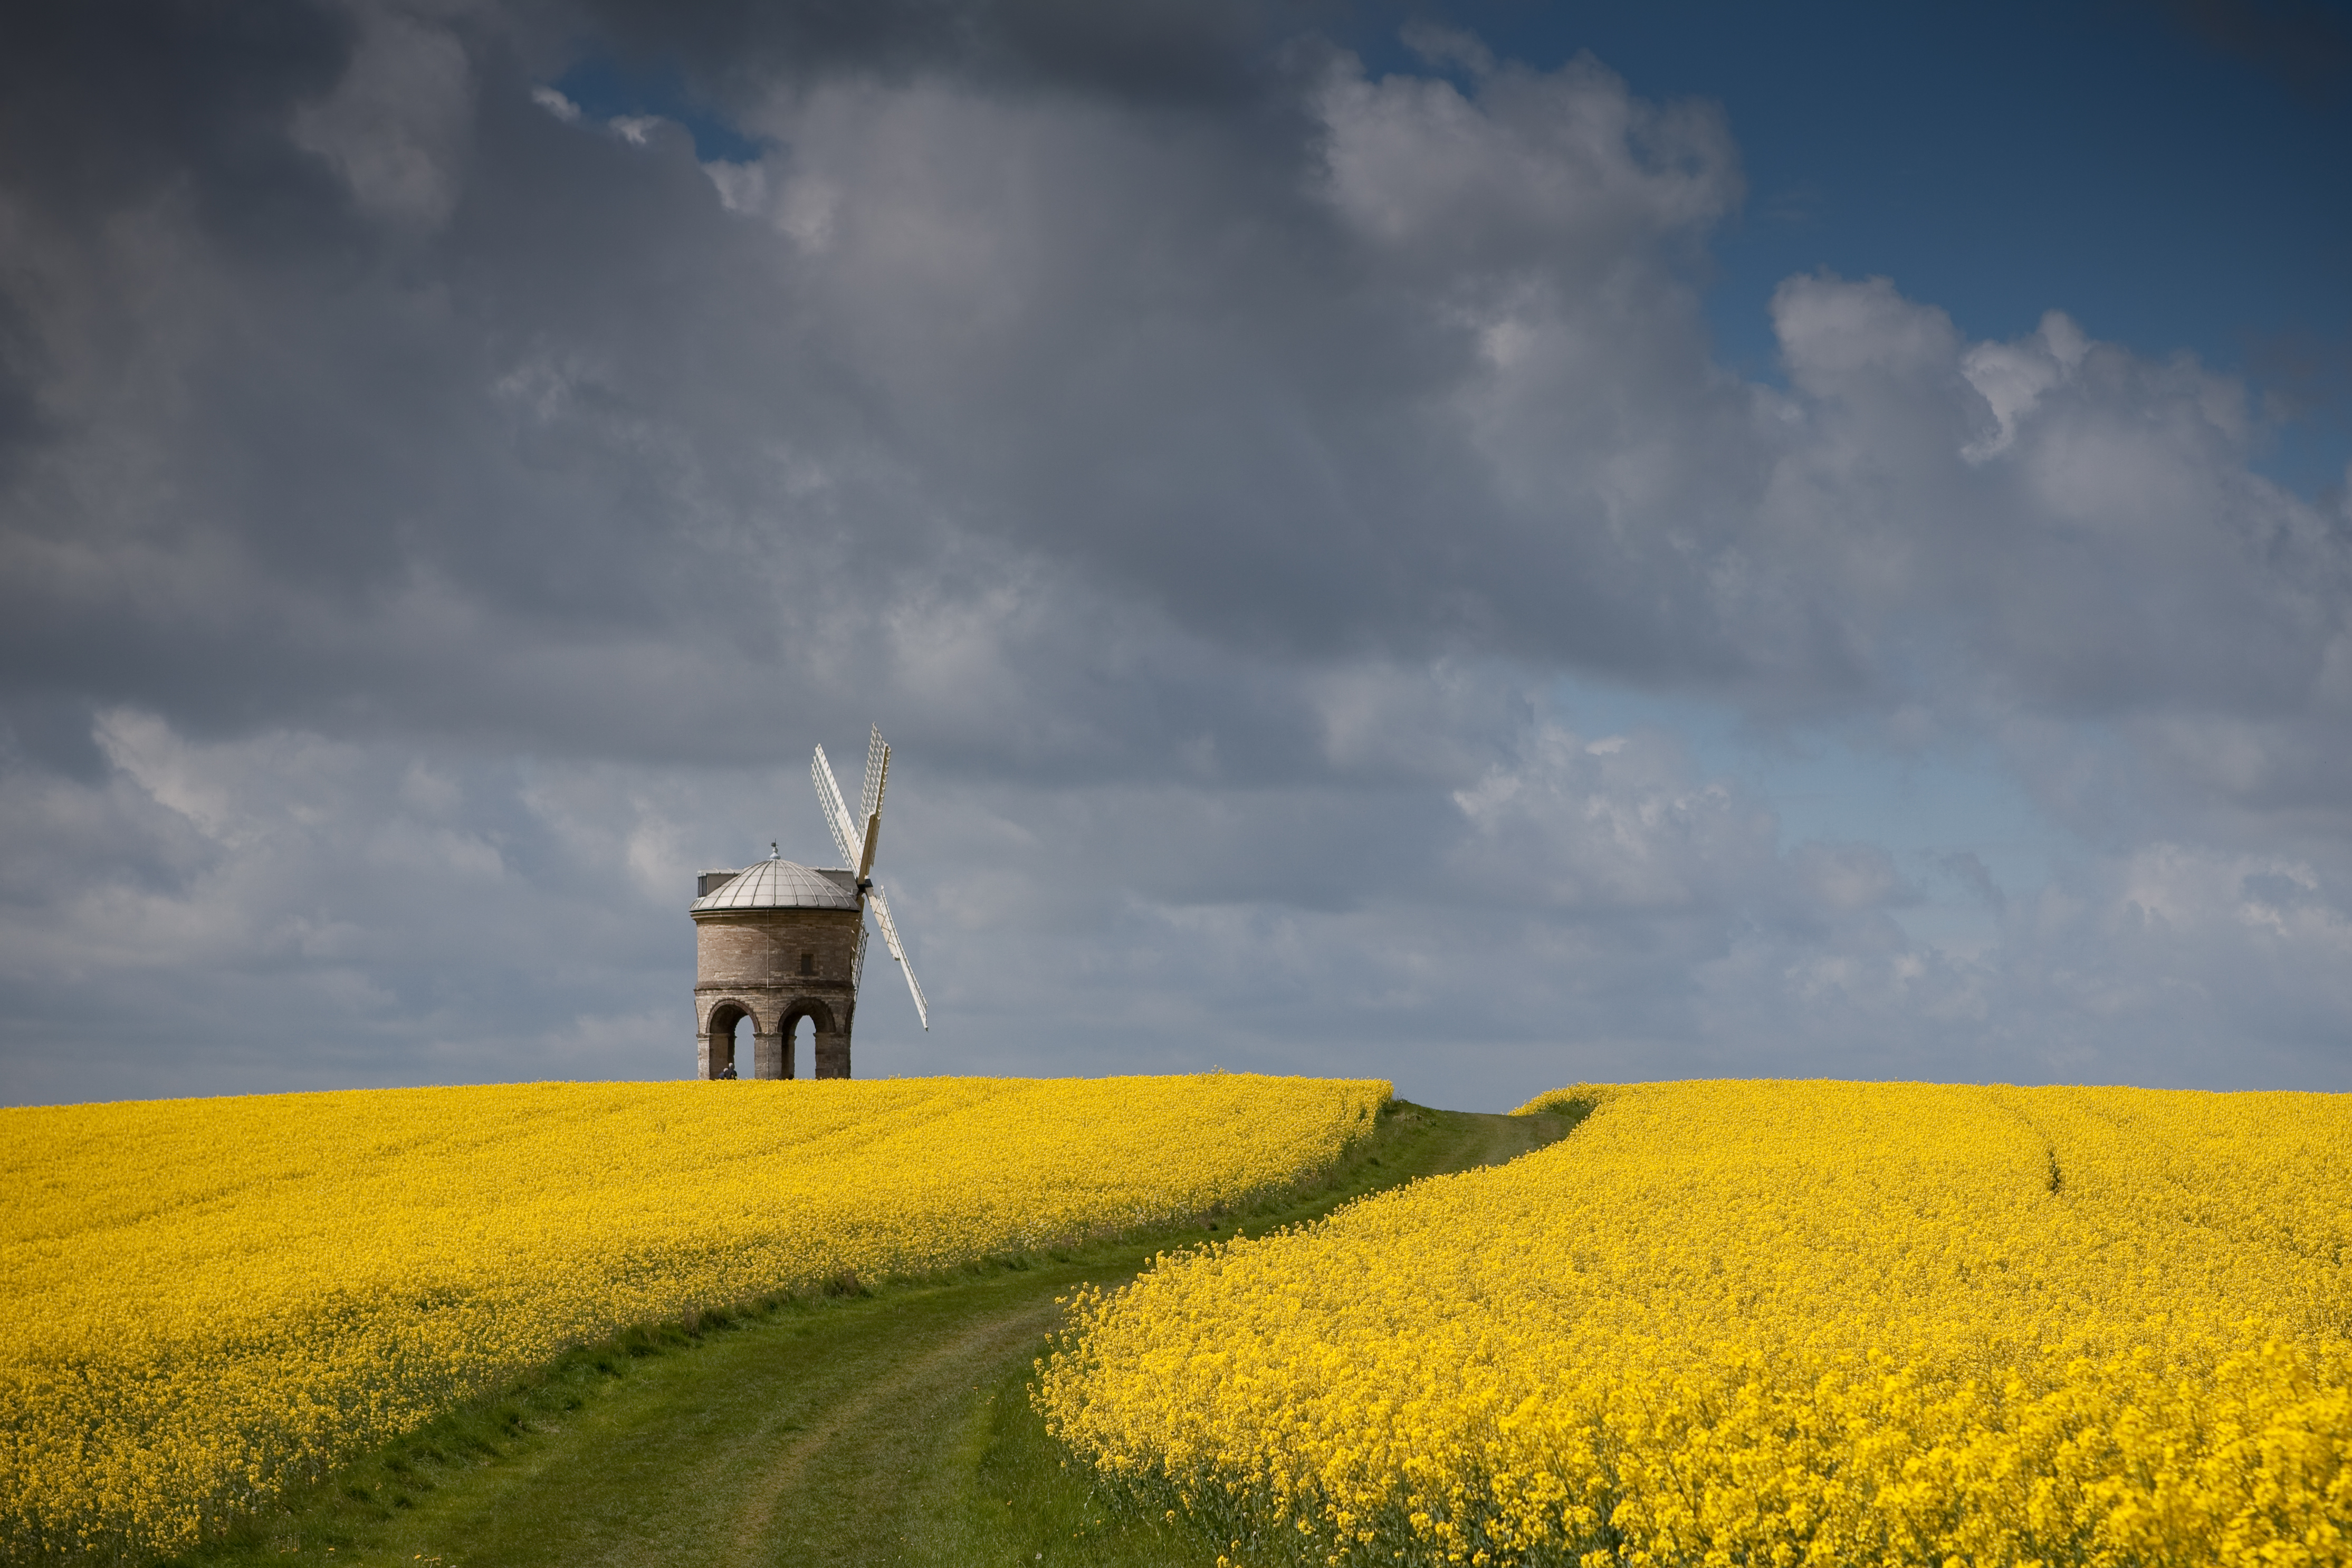 Beginners photography course image | Chesterton Windmill